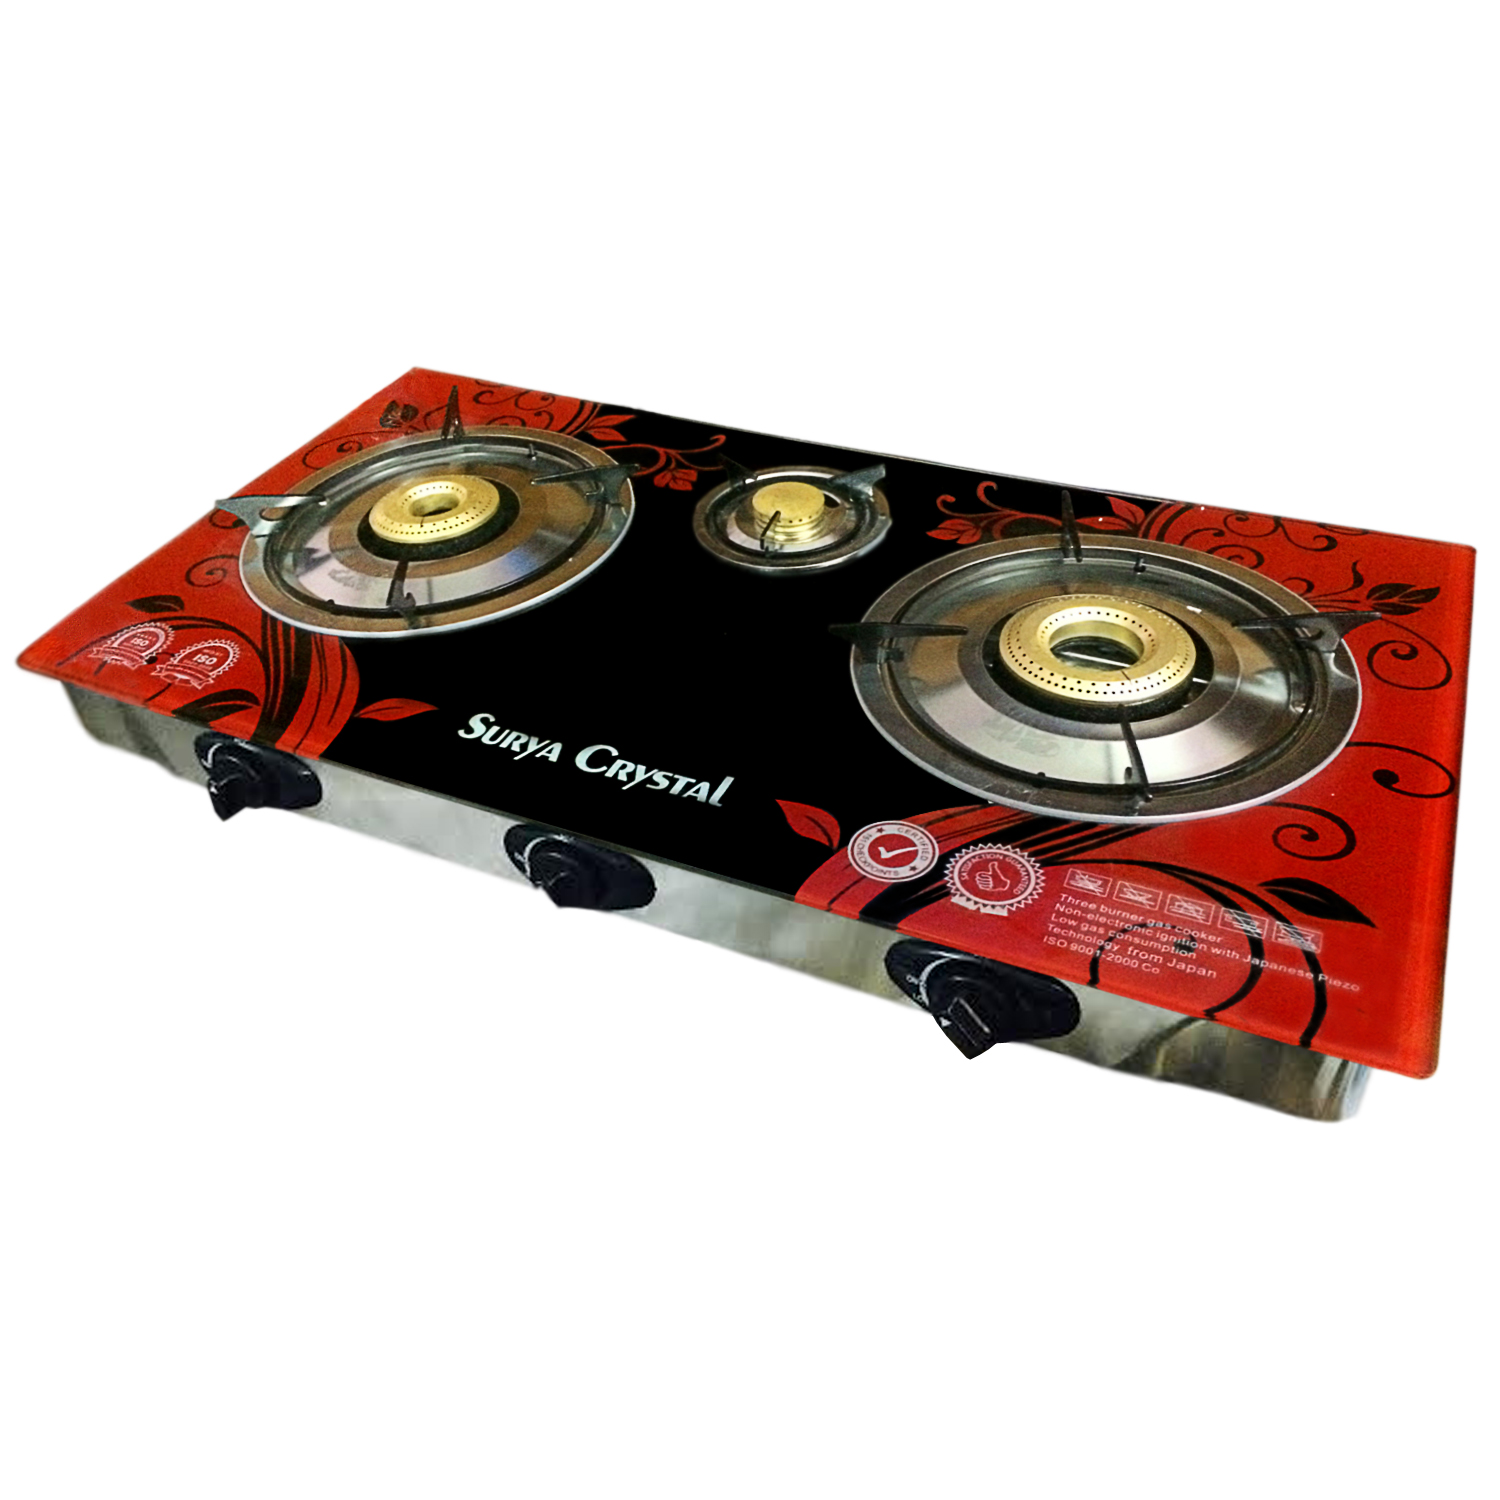 Surya Crystal 3 Burners Automatic Glass Top Gas Cooktop at shopclues